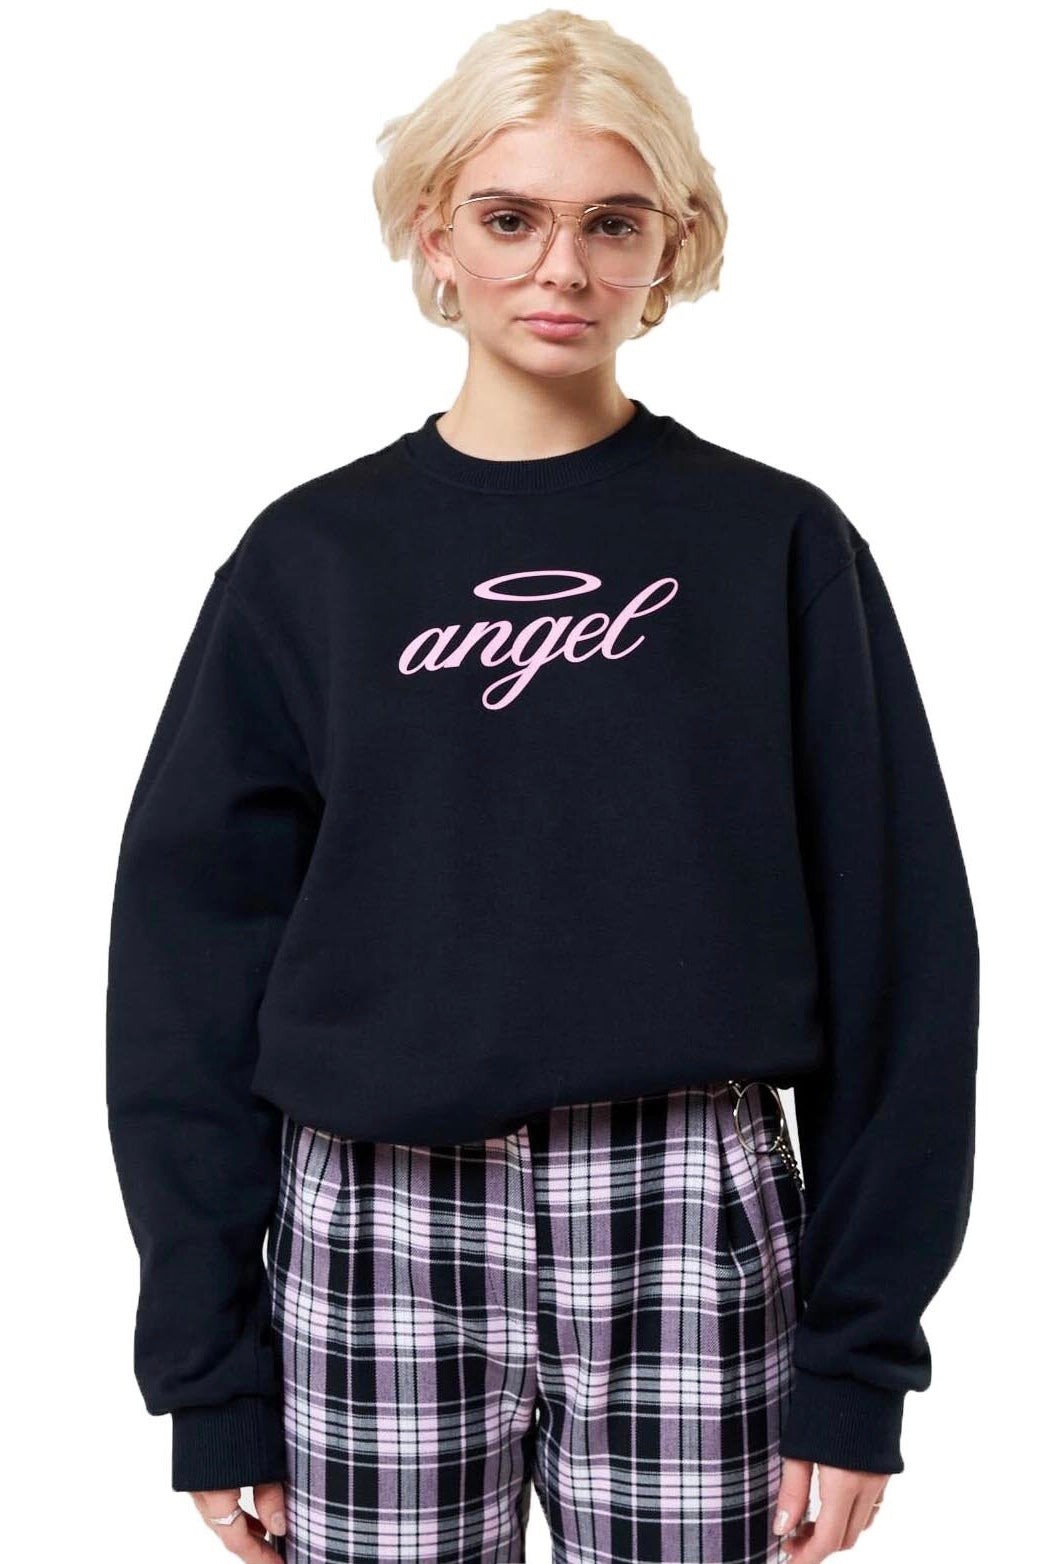 MINGA Sweatshirt Angel Black/Pink